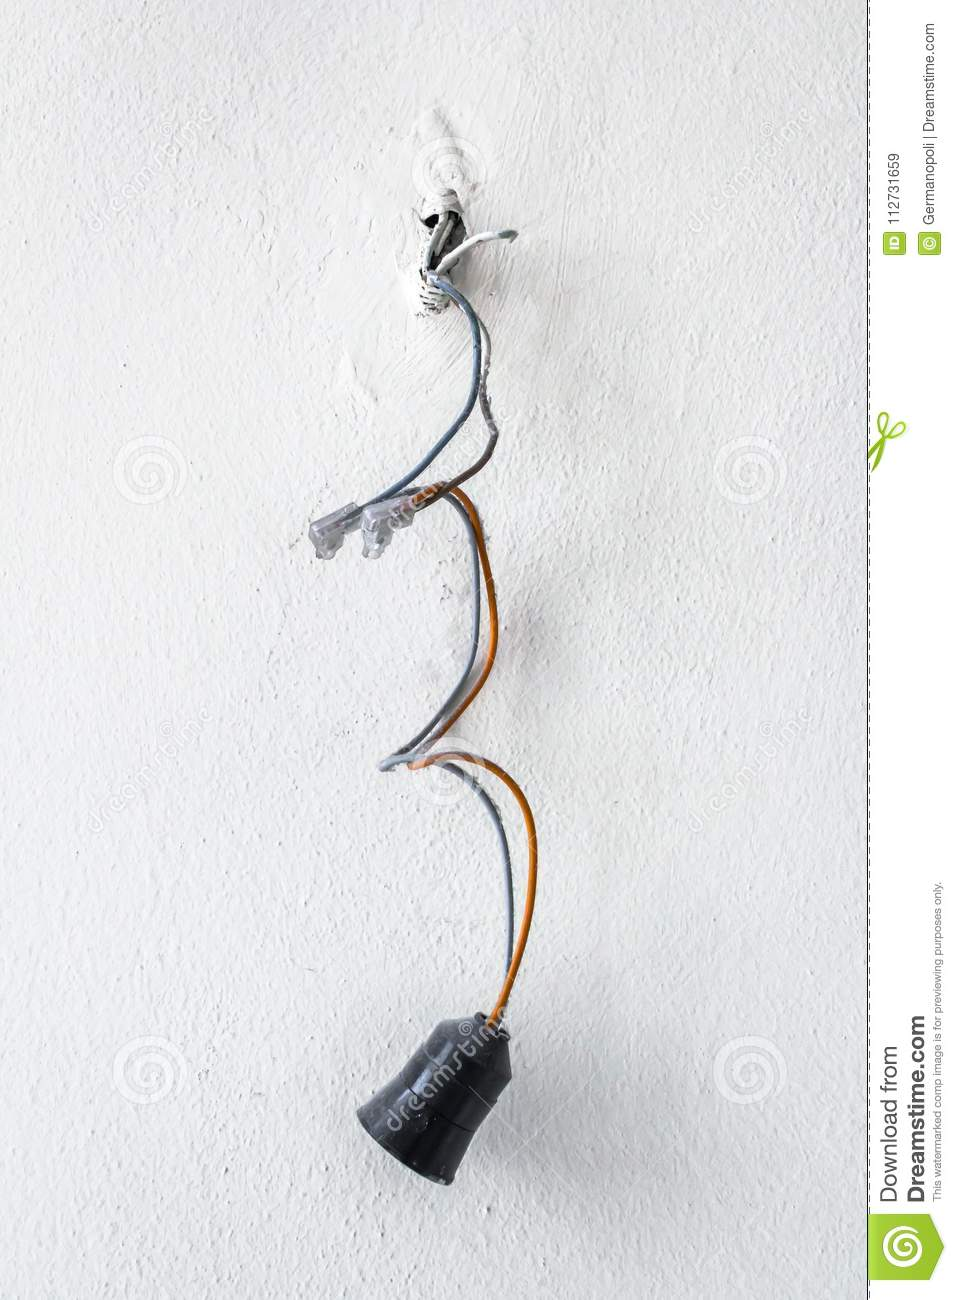 Dangerous Bad Wiring Leading To The Bulb Stock Image Of Electrical Connection Lamp Poor